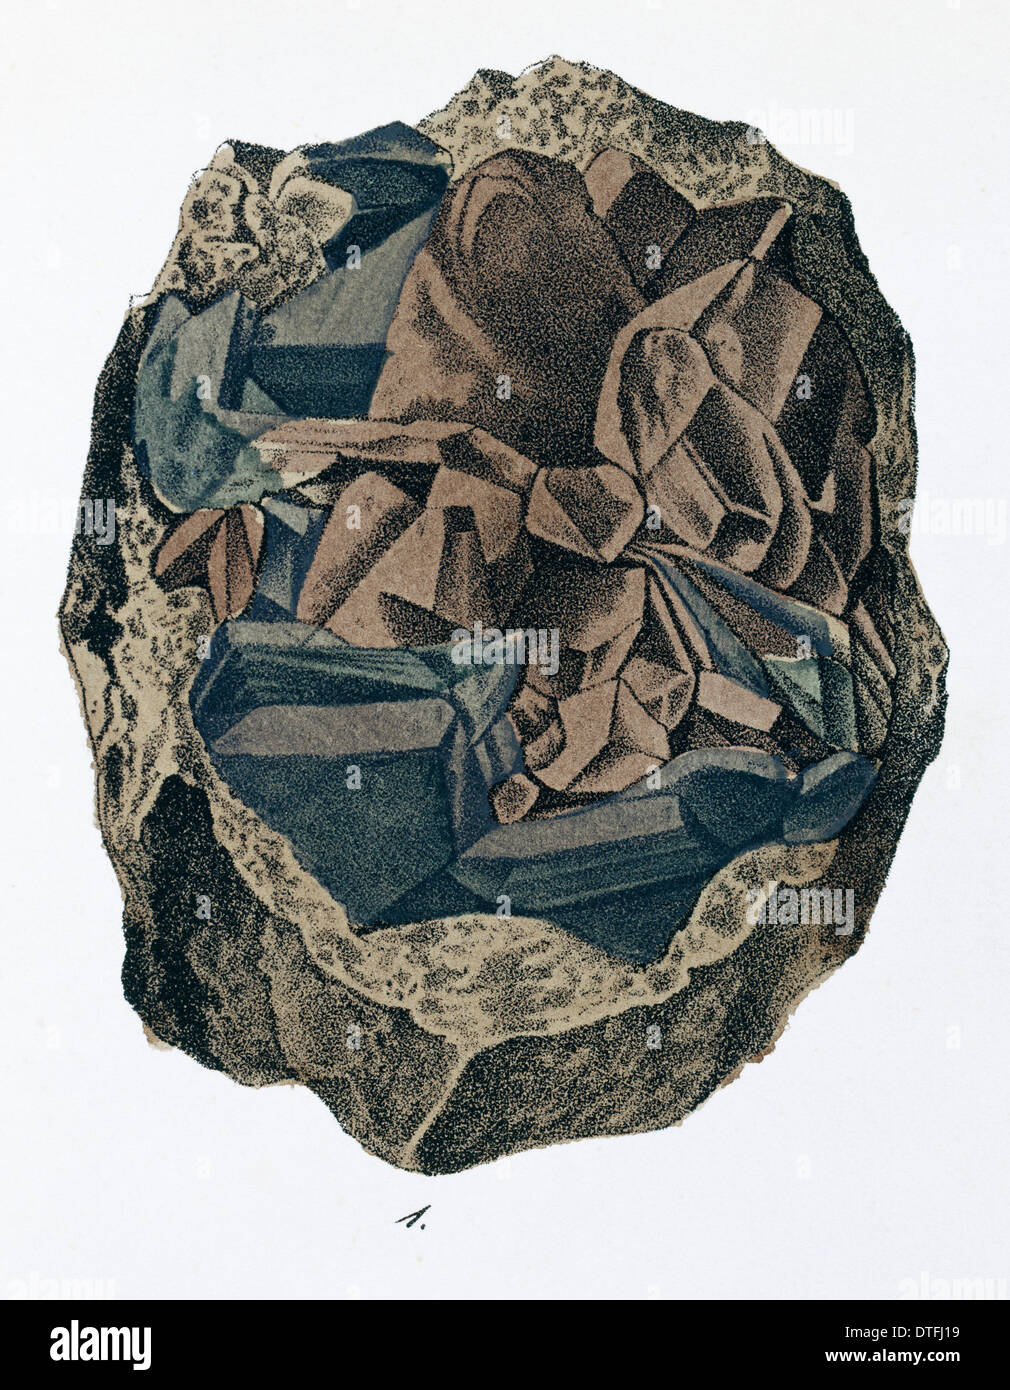 Plate 10, fig 1 from Mineralienbuch - Stock Image